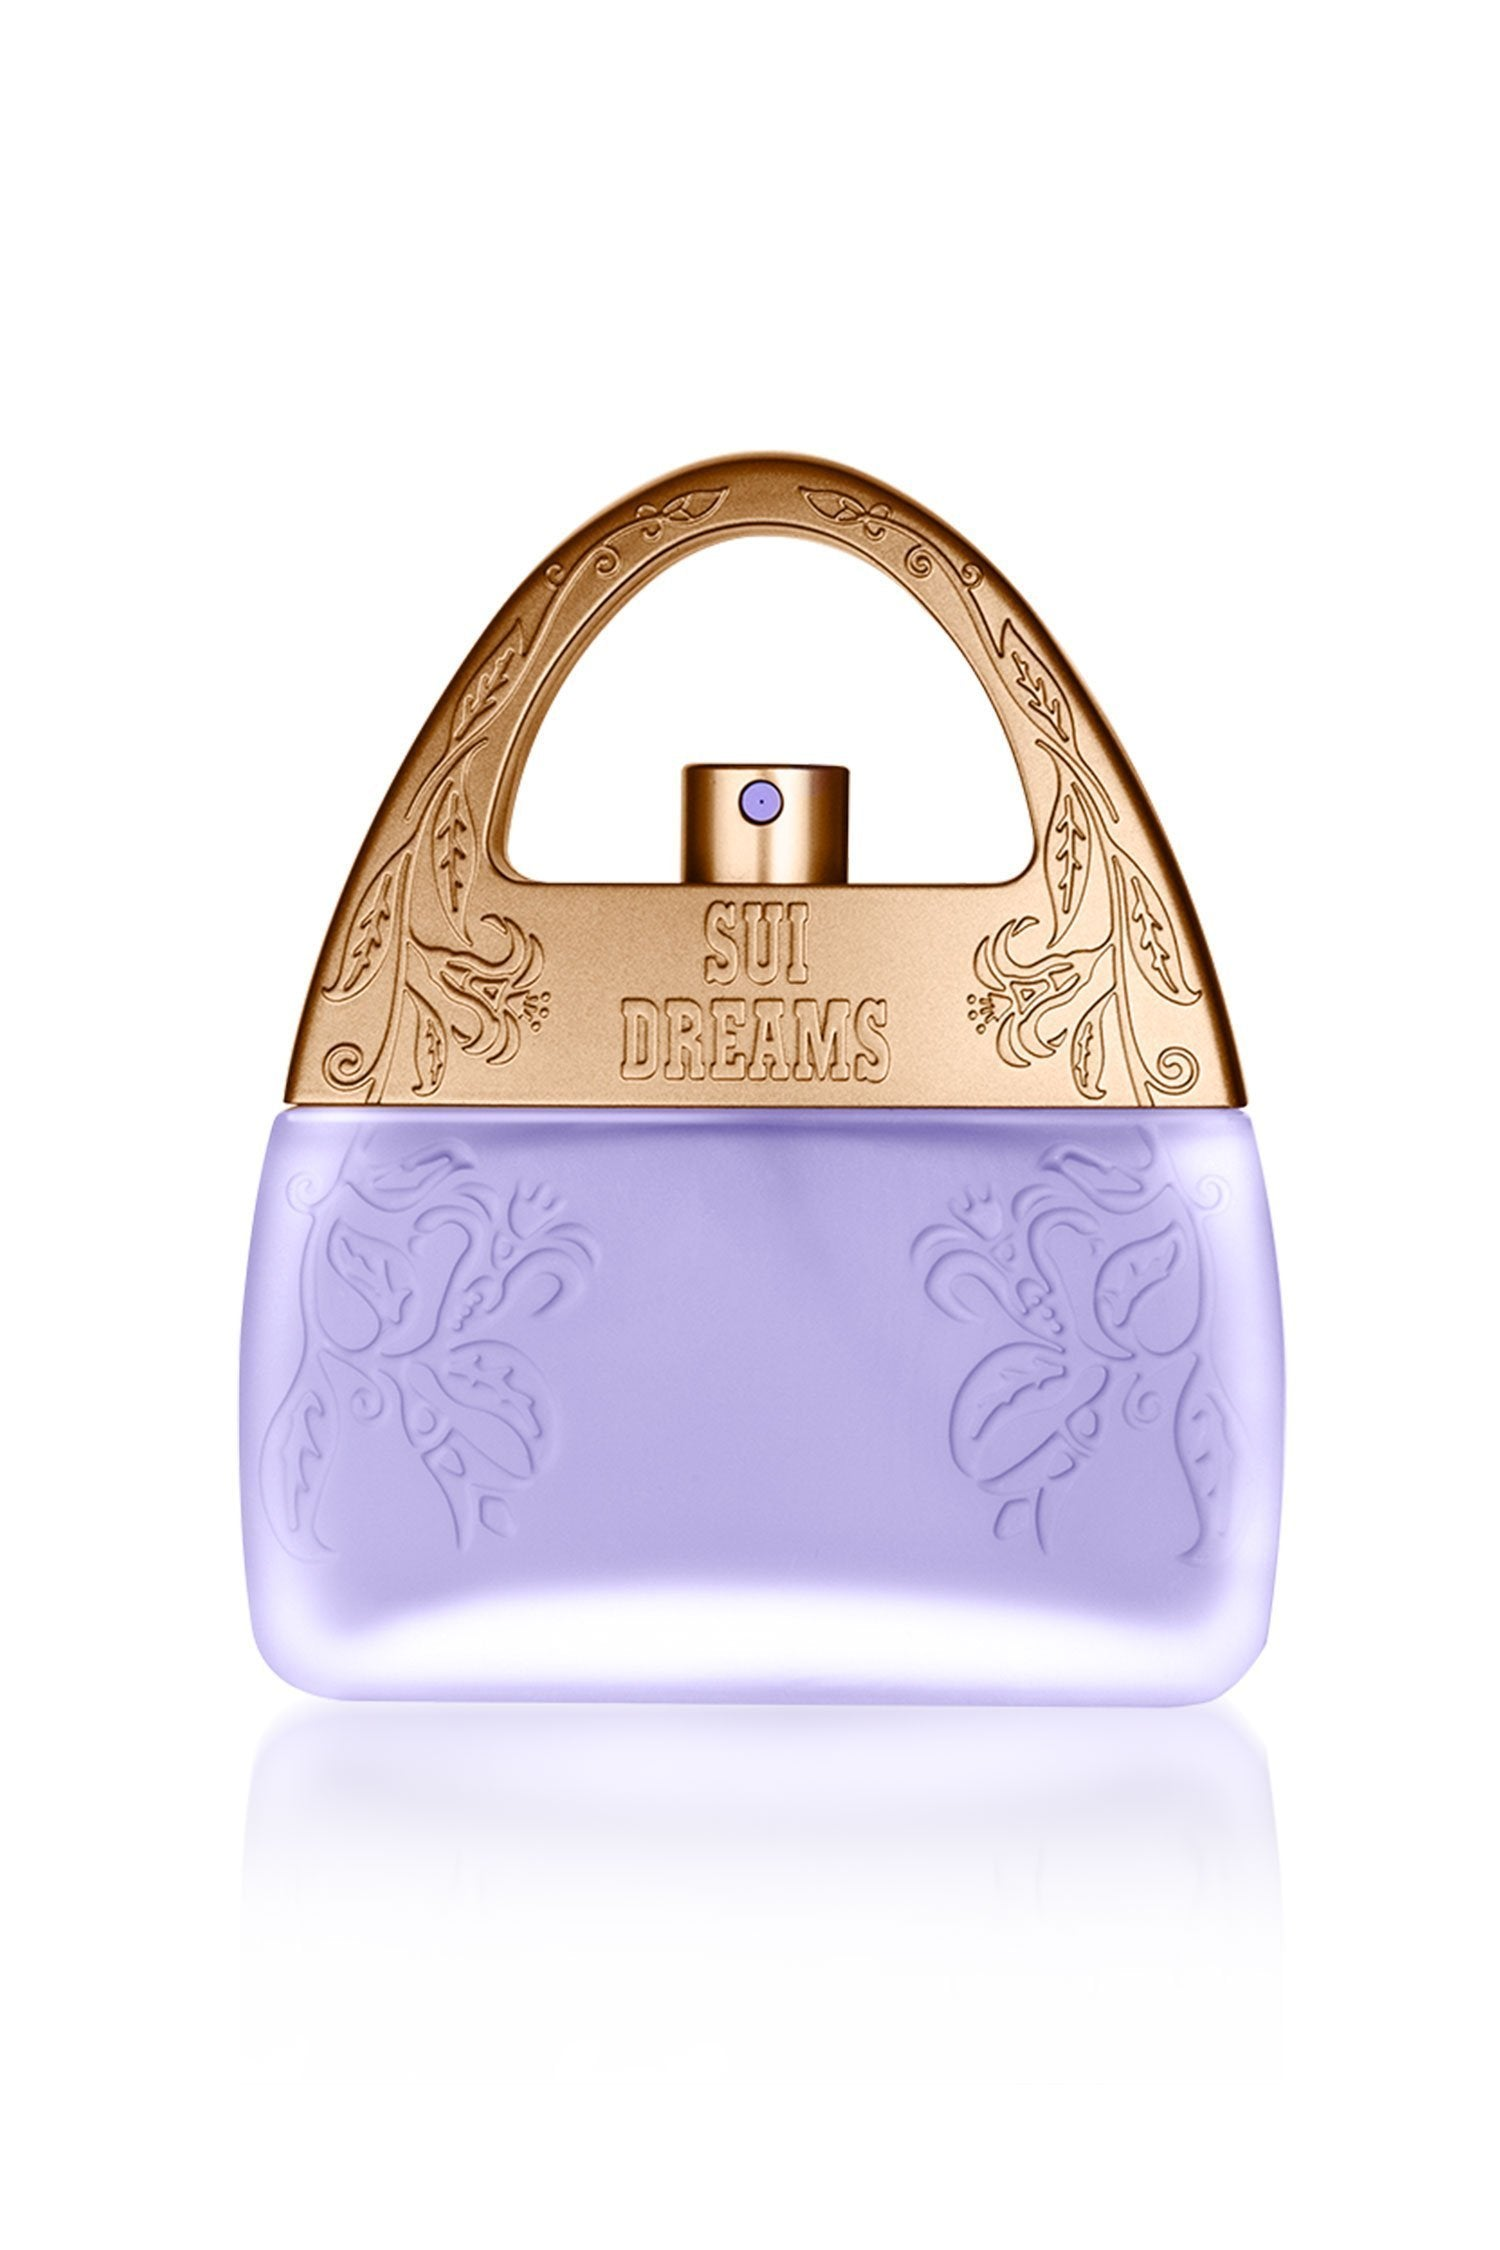 Sui Dreams in Purple <br>Eau de Toilette - Anna Sui